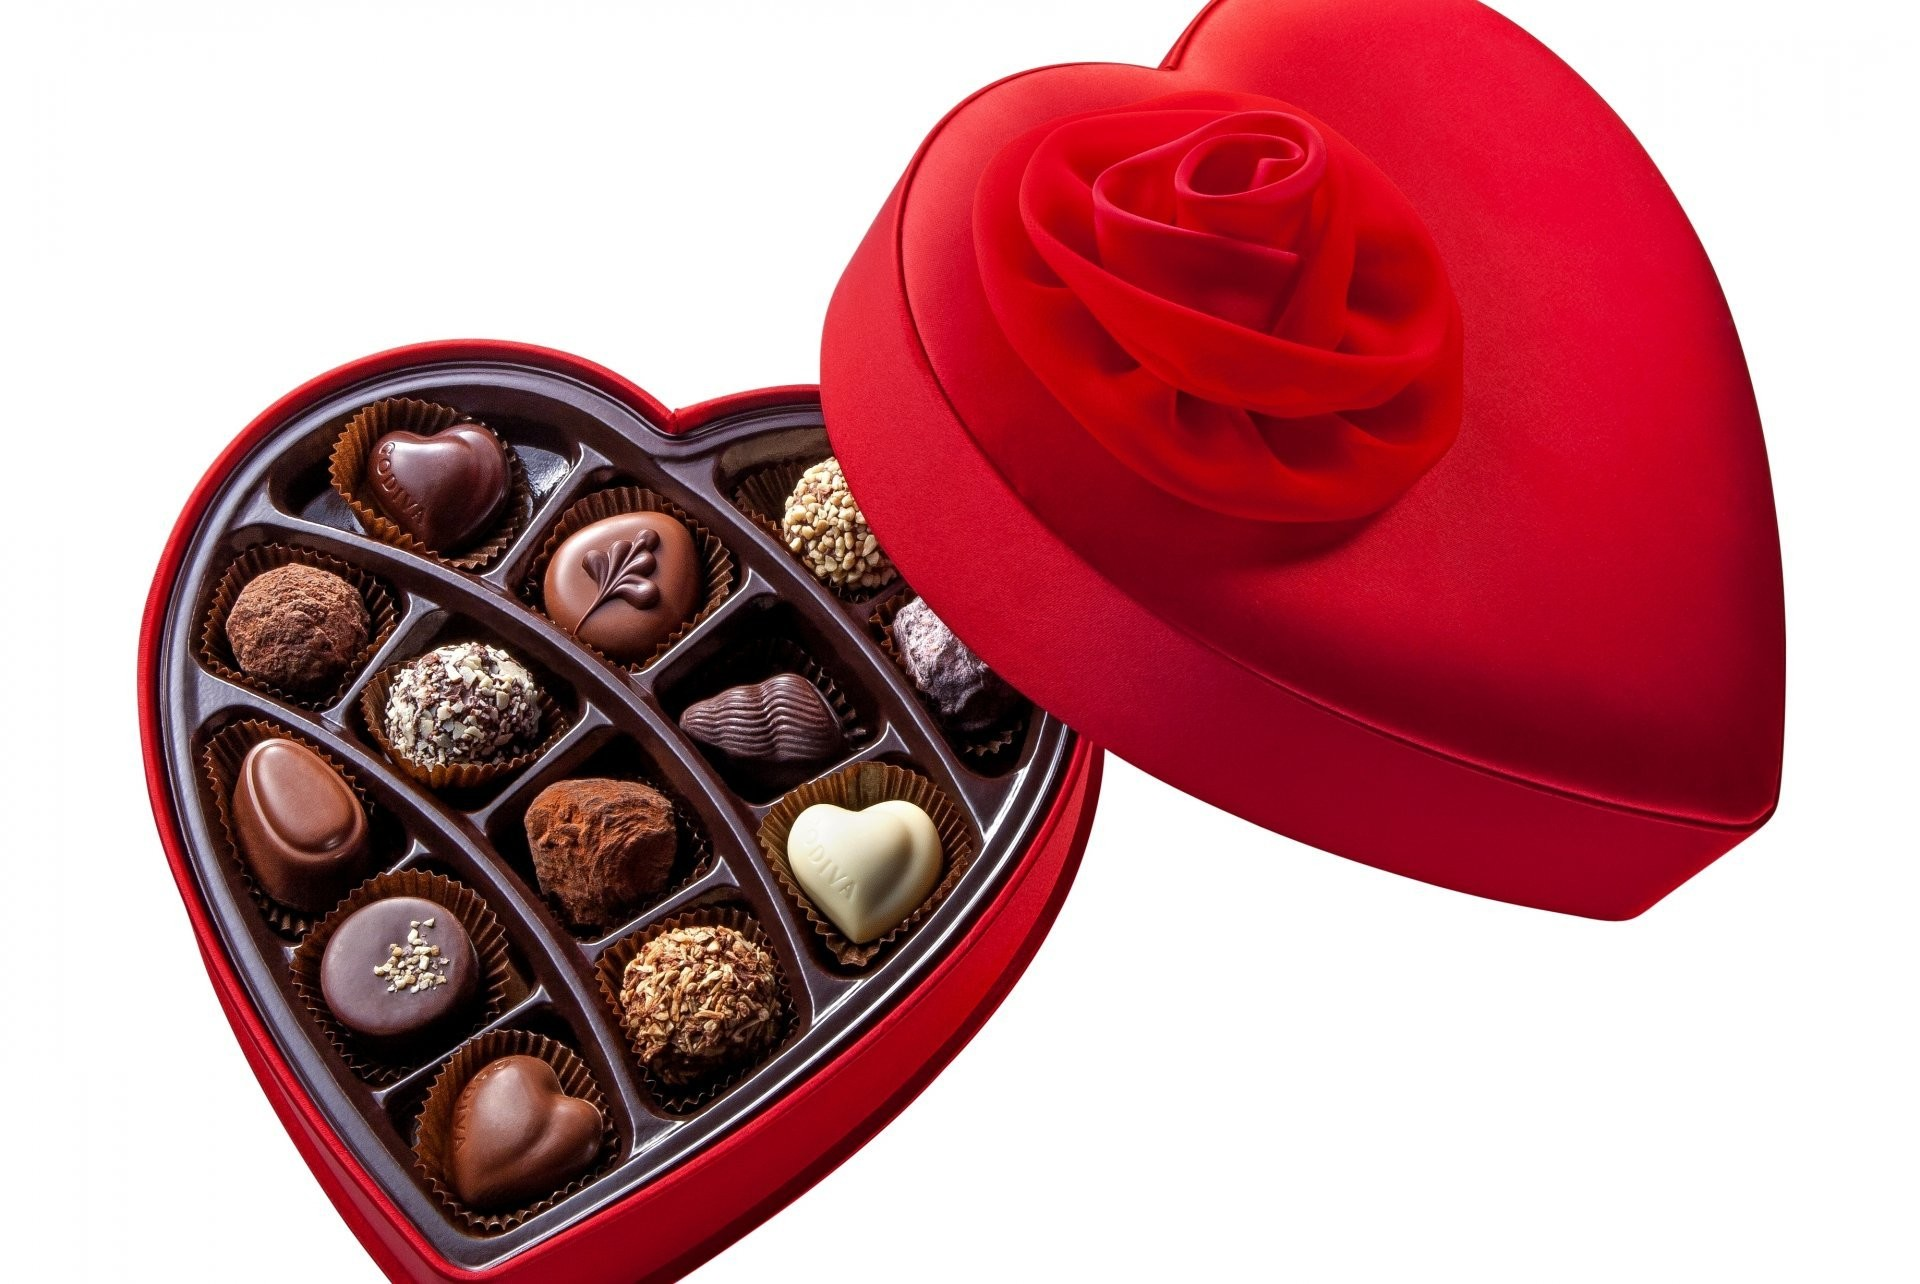 1920x1284 chocolate flower holiday i love you love rose red candy heart cream  chocolate candy heart cream